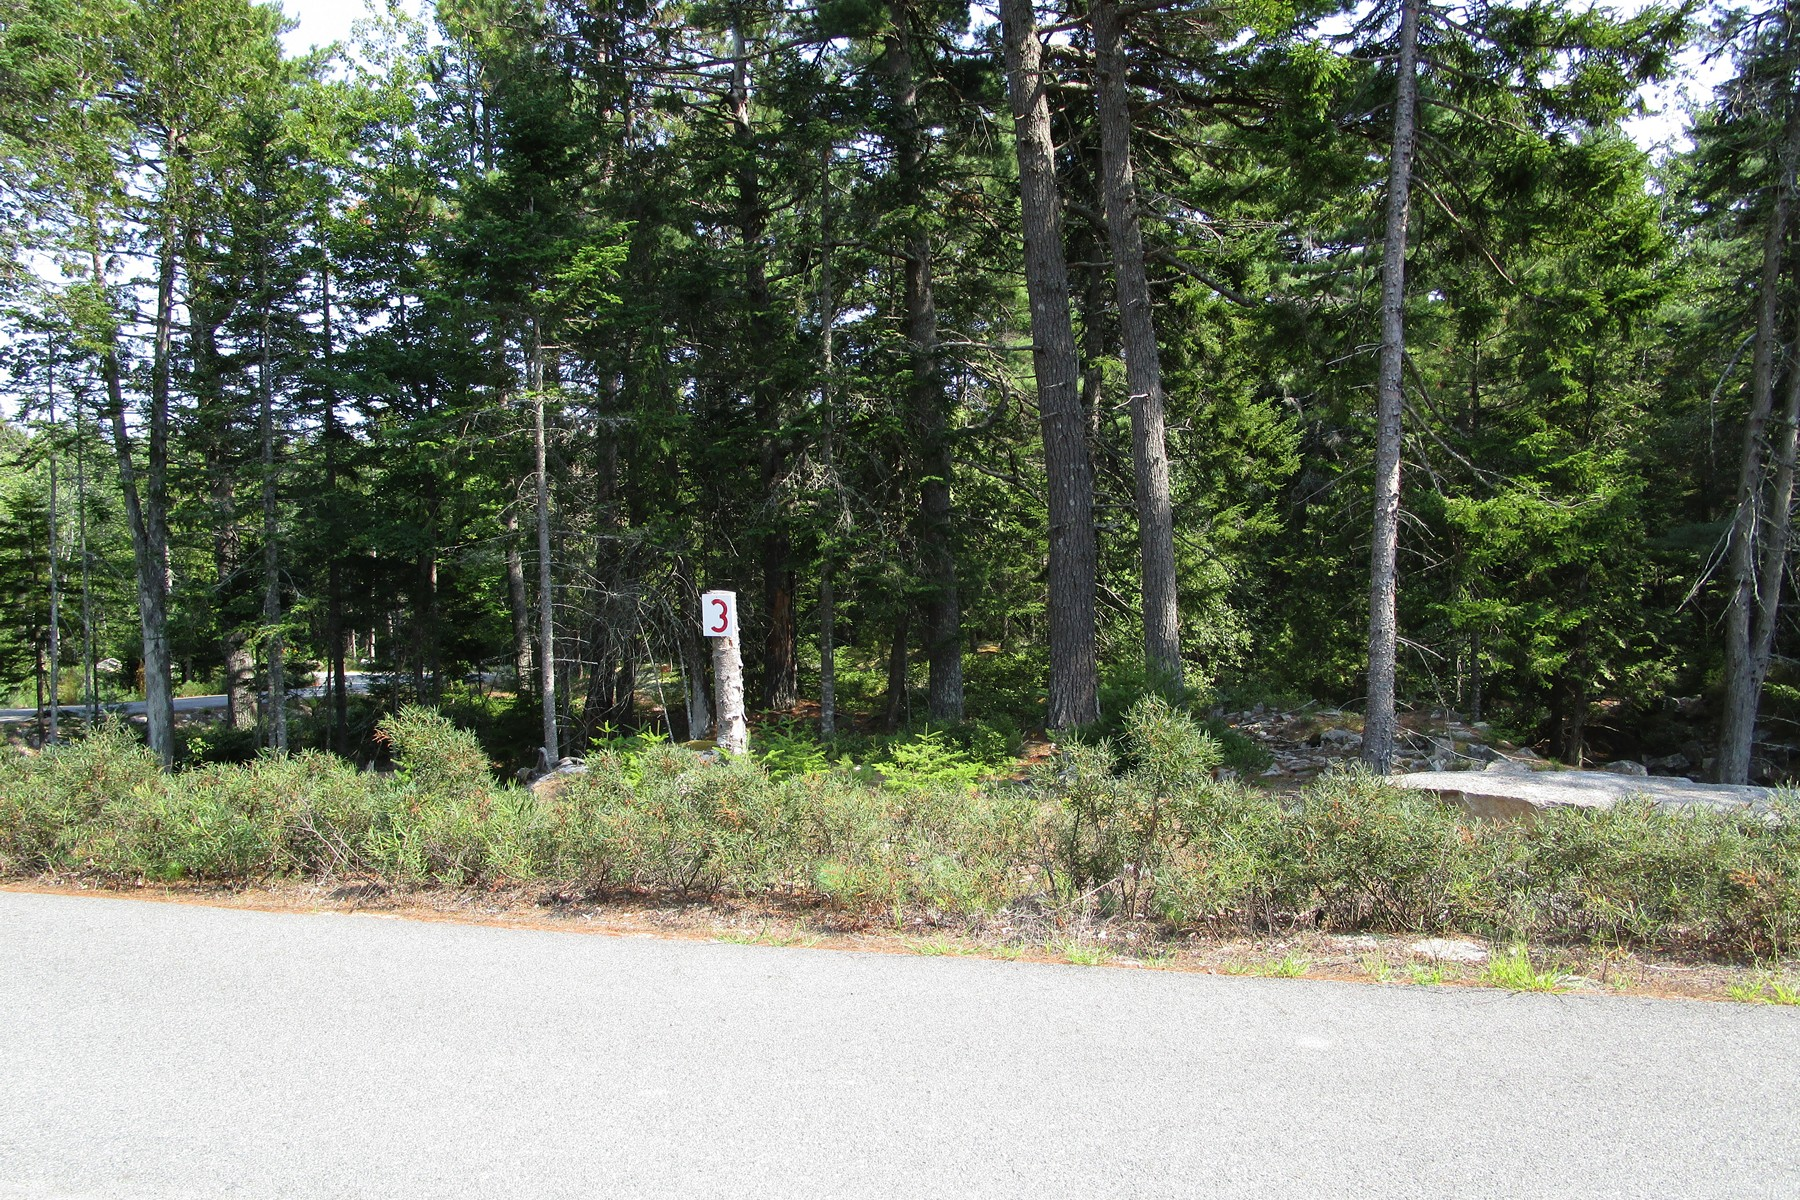 Terreno por un Venta en Echo Woods Road Lot 3 Lot 3 Echo Woods Road Mount Desert, Maine, 04660 Estados Unidos